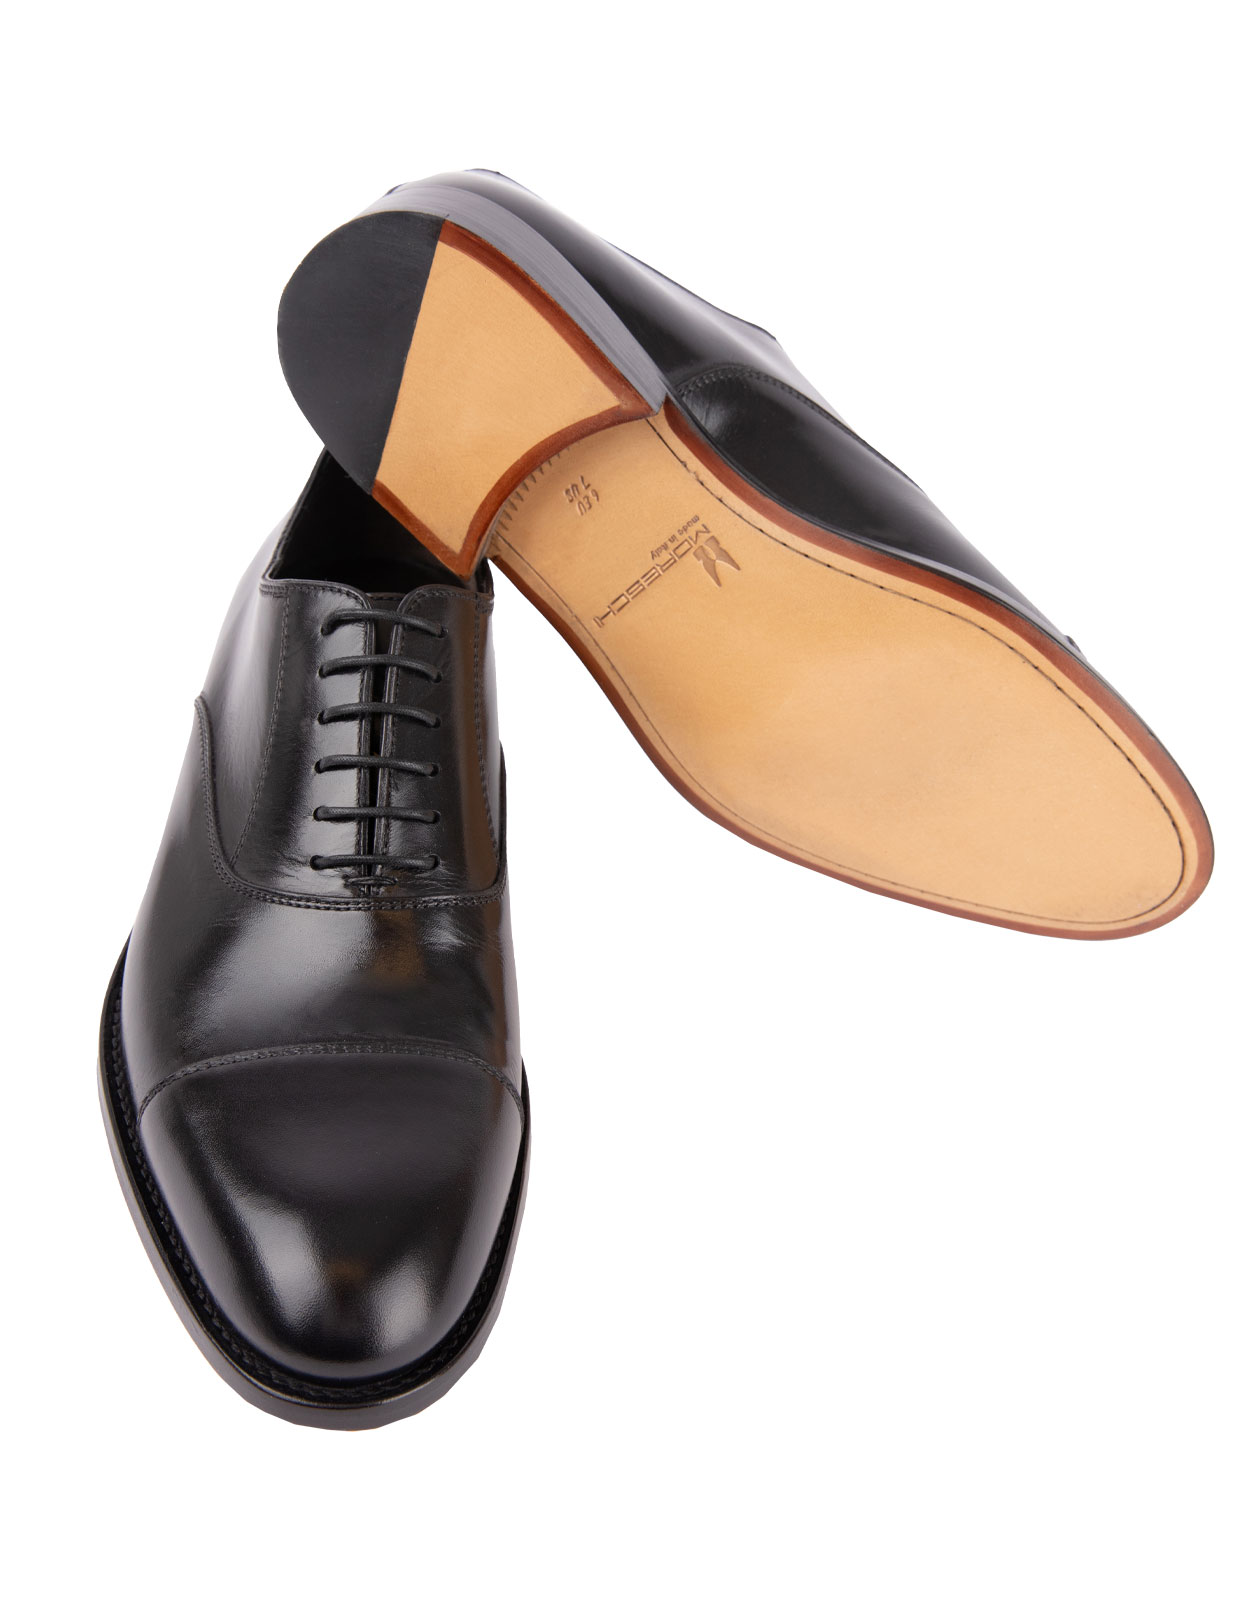 New York Oxford Shoes Calfskin Black Stl 11